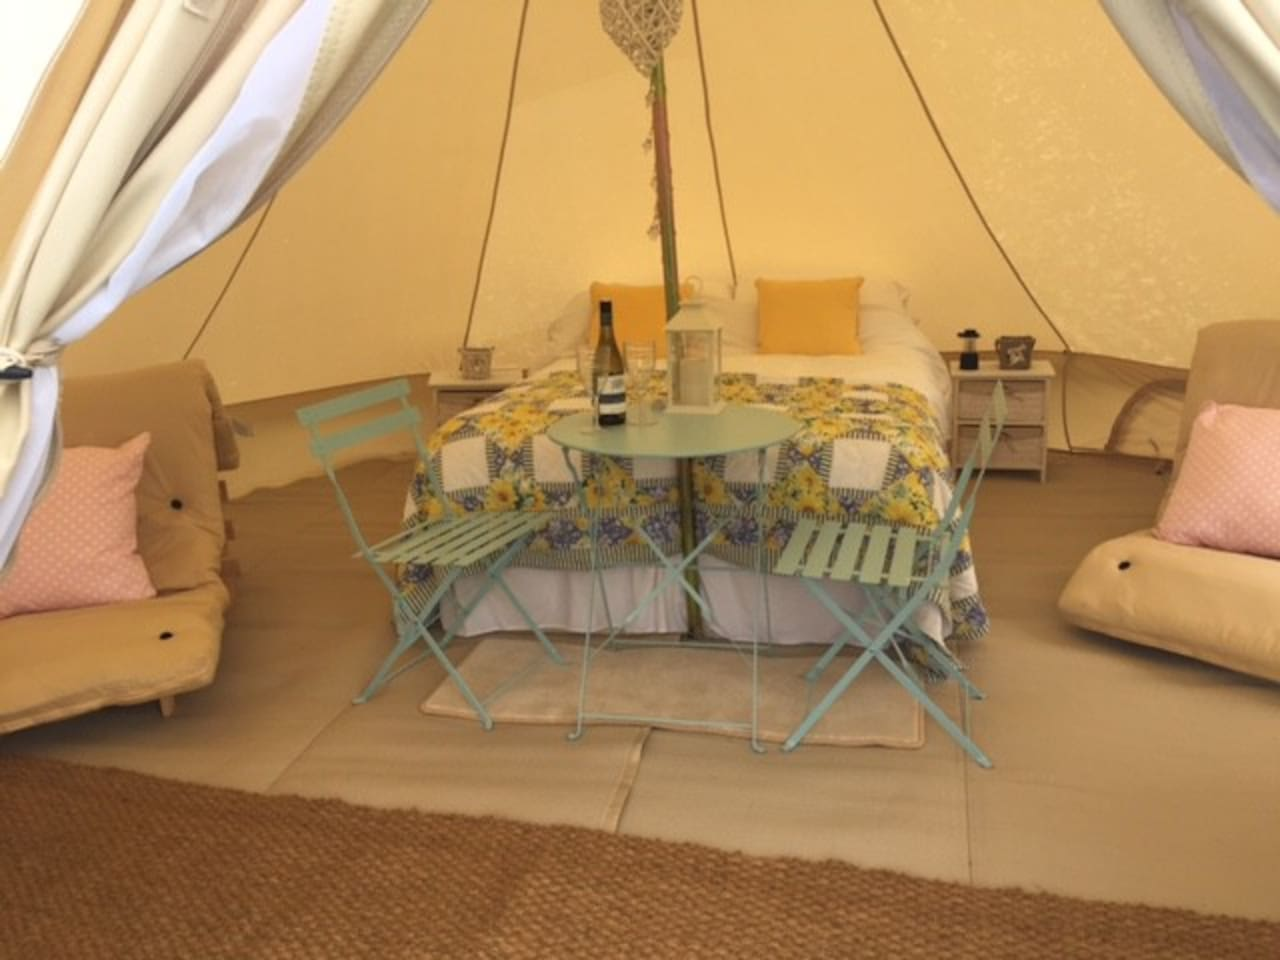 NEW BELL TENT 5MYour luxury Bell Tent  is set in the field adjoining our campsite  with views over scenic countryside, mountains and the Lleyn Peninsula. The 5 metre bell tent sleeps up to 4 and can be set up for a romantic retreat or for a family holiday.  The tent has, duvets and cotton bedding, throw and cushions.